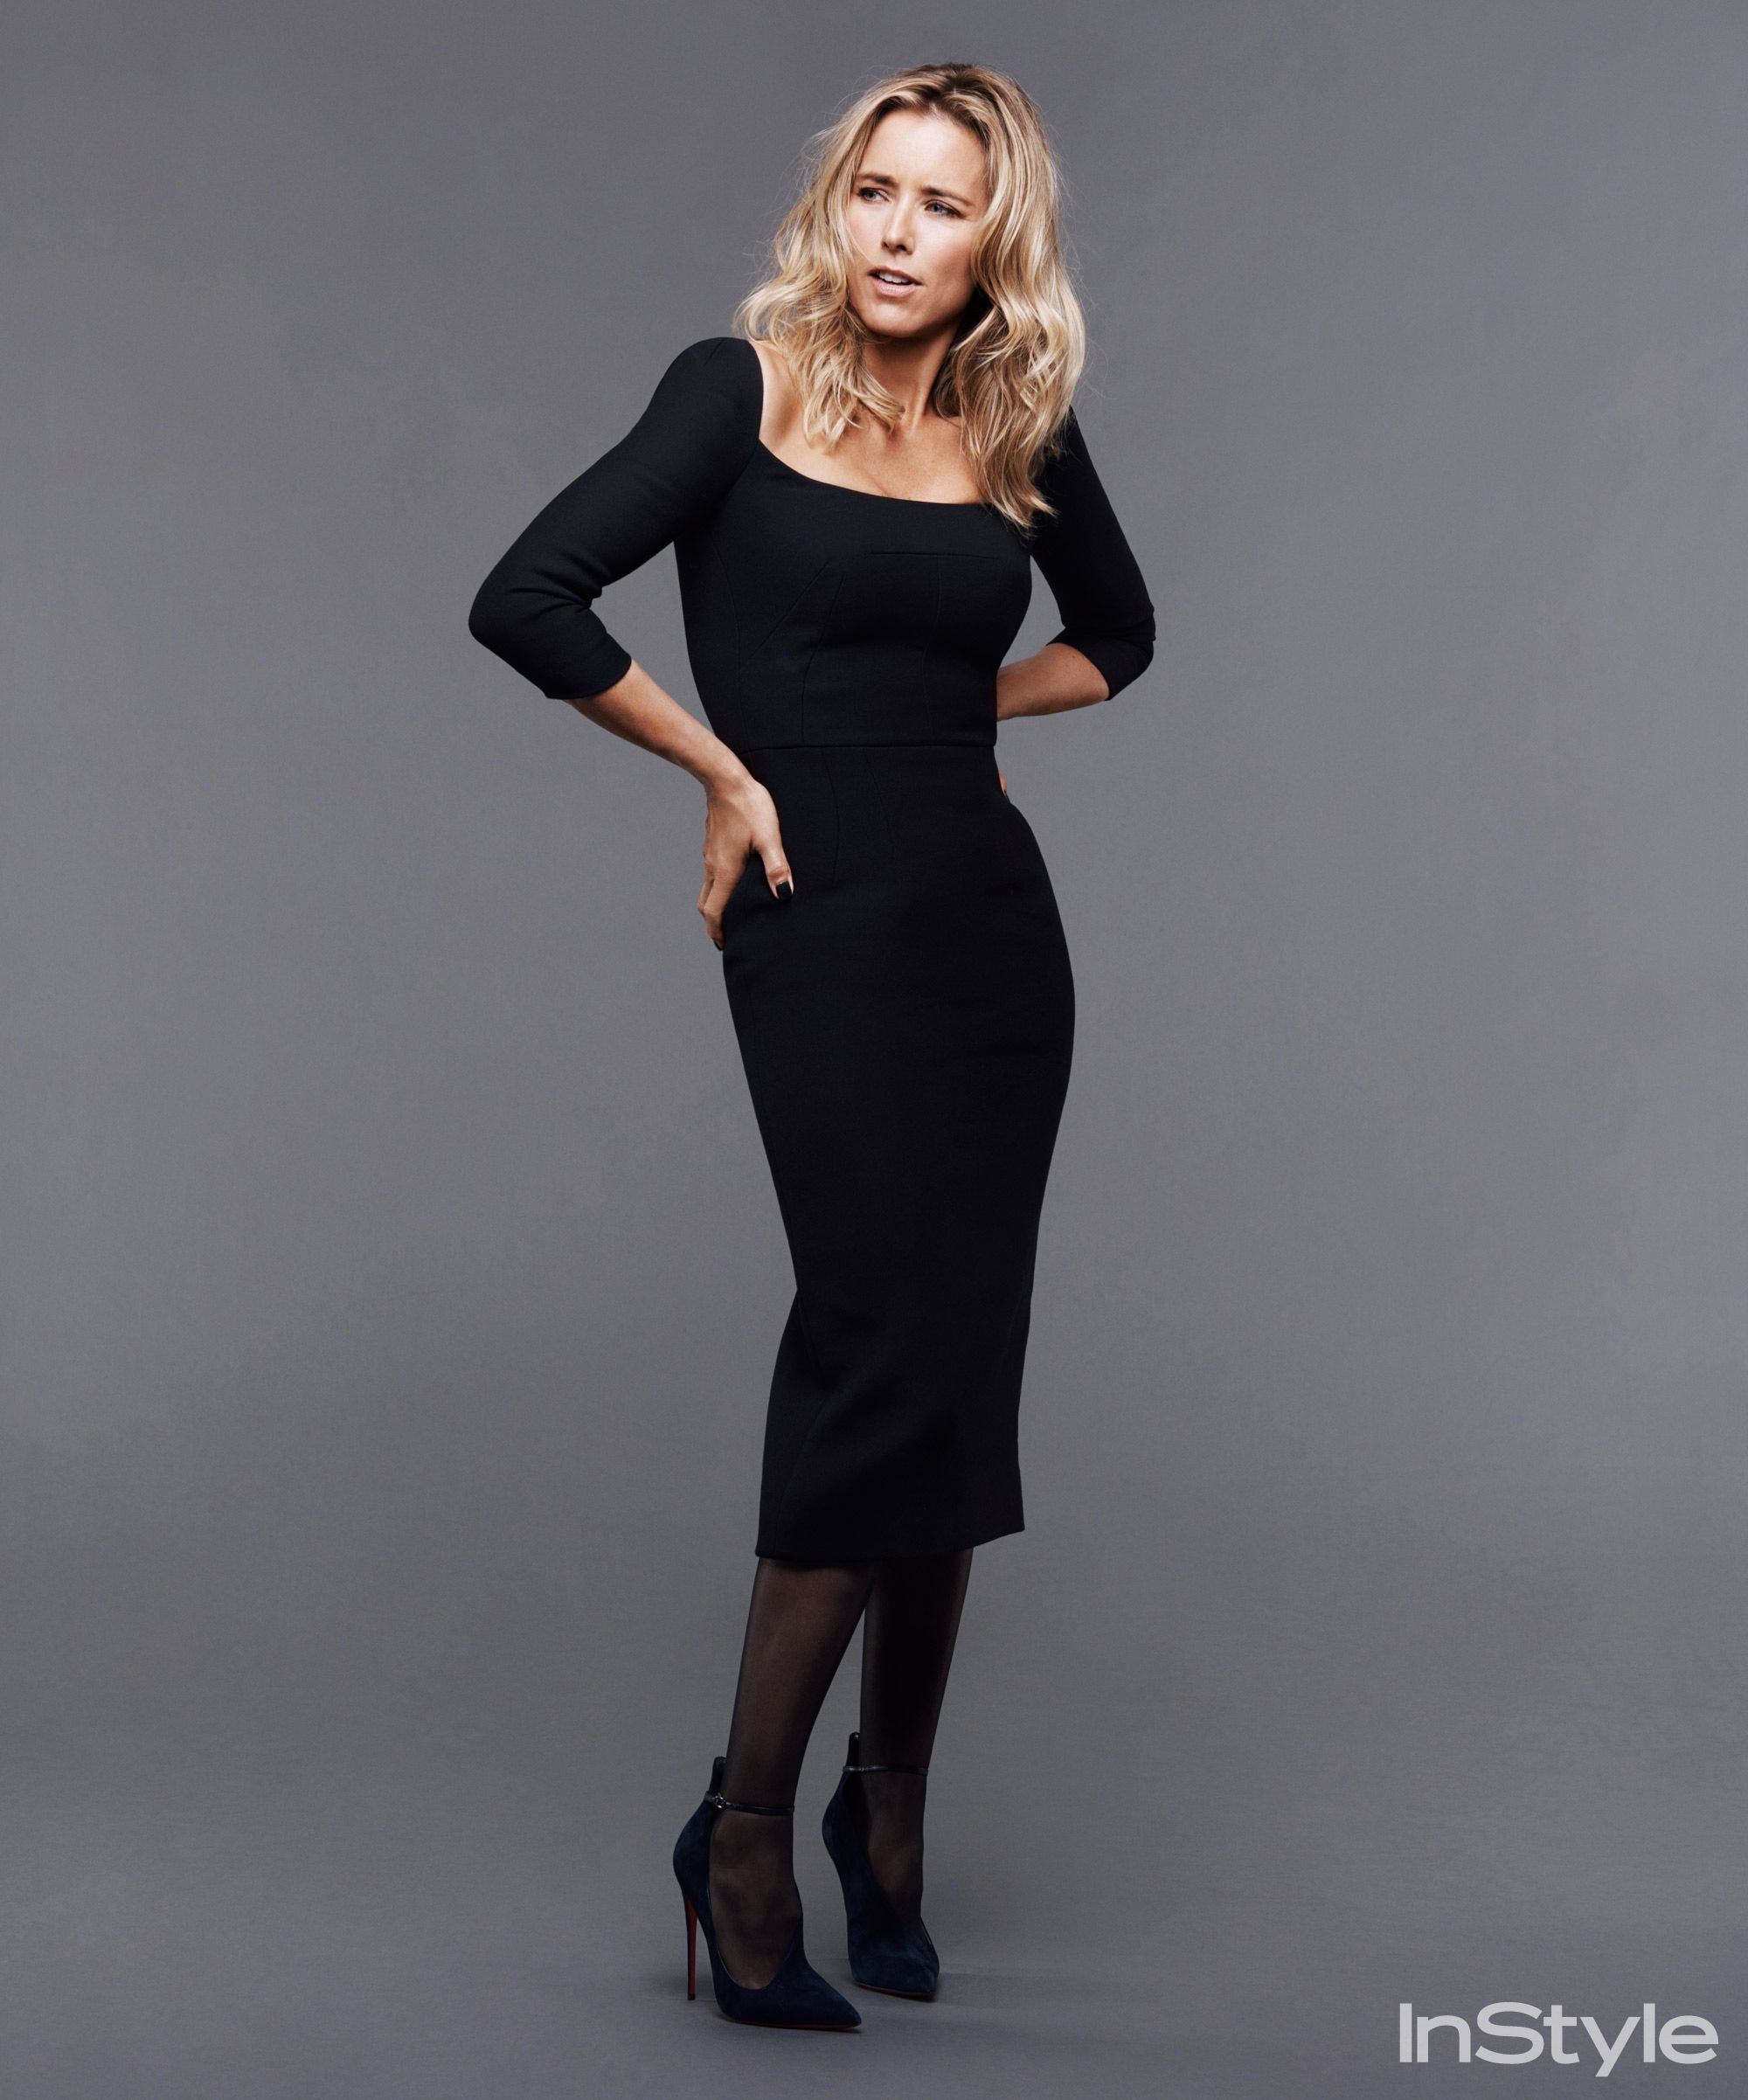 Something and All about tea leoni legs